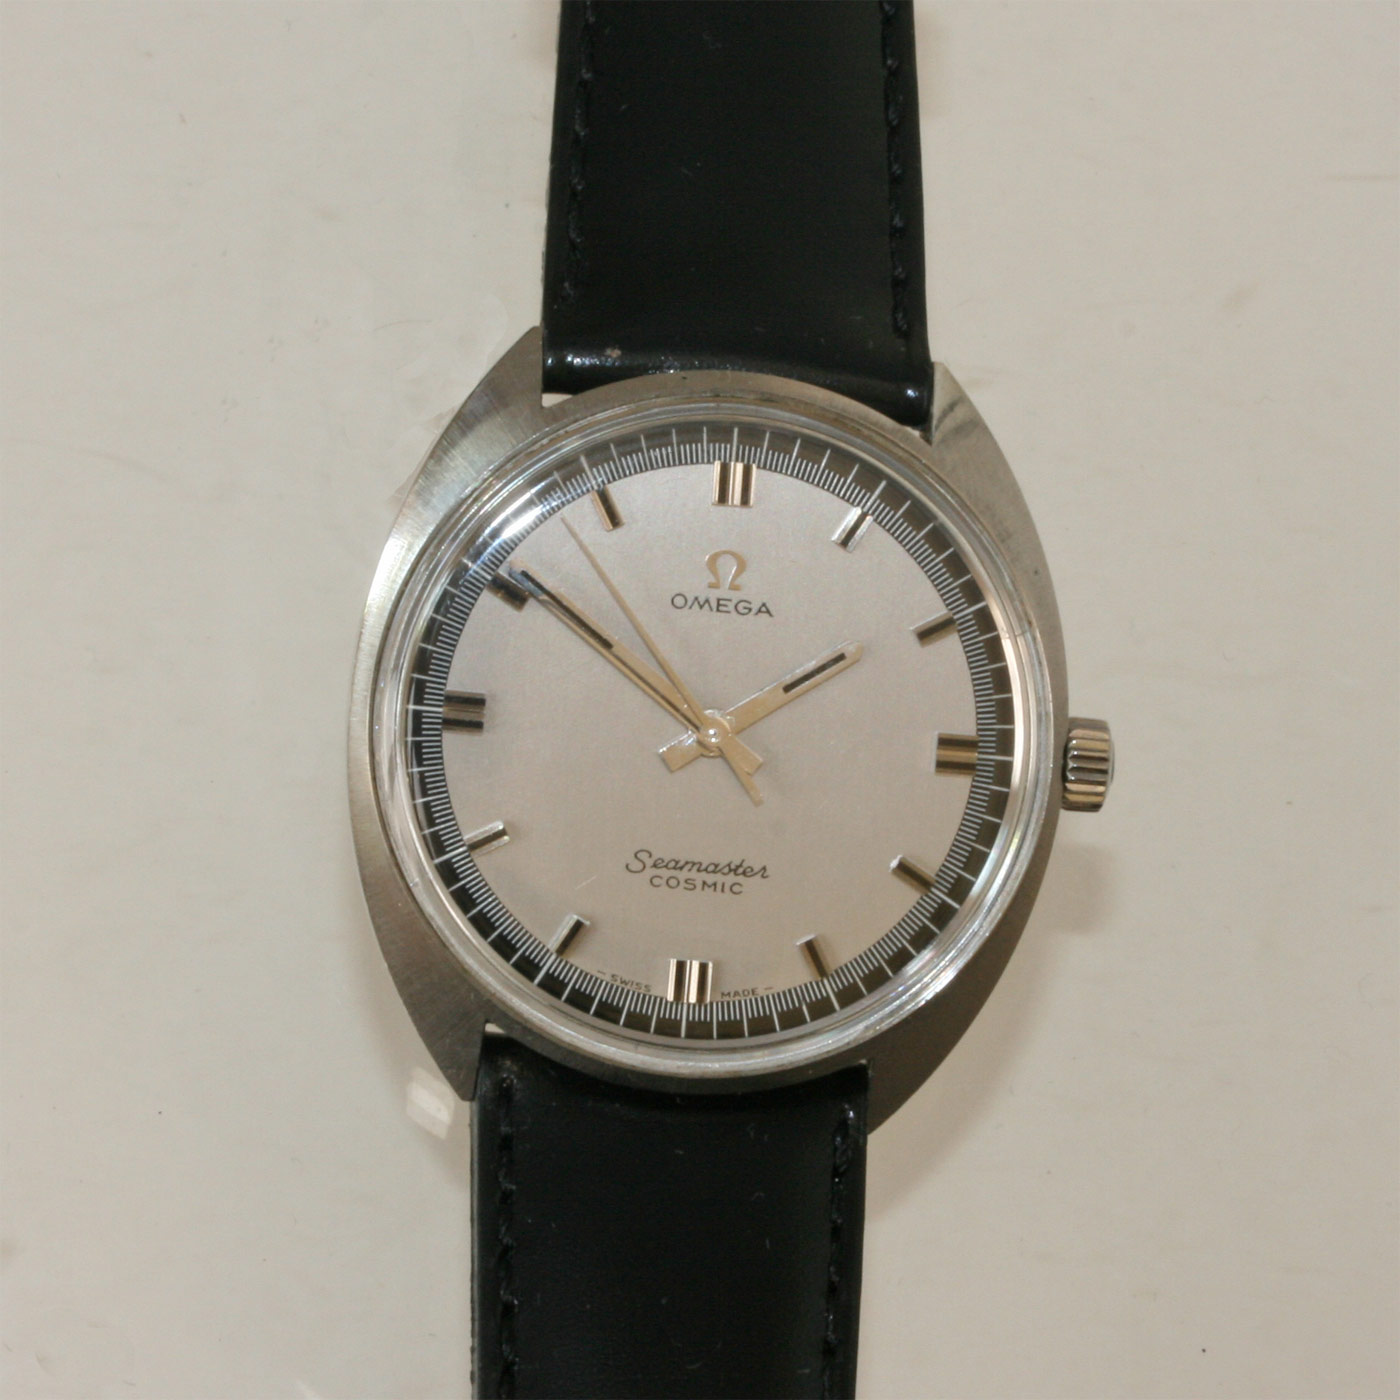 Buy Vintage Omega Seamaster Cosmic Sold Items Sold Omega Watches